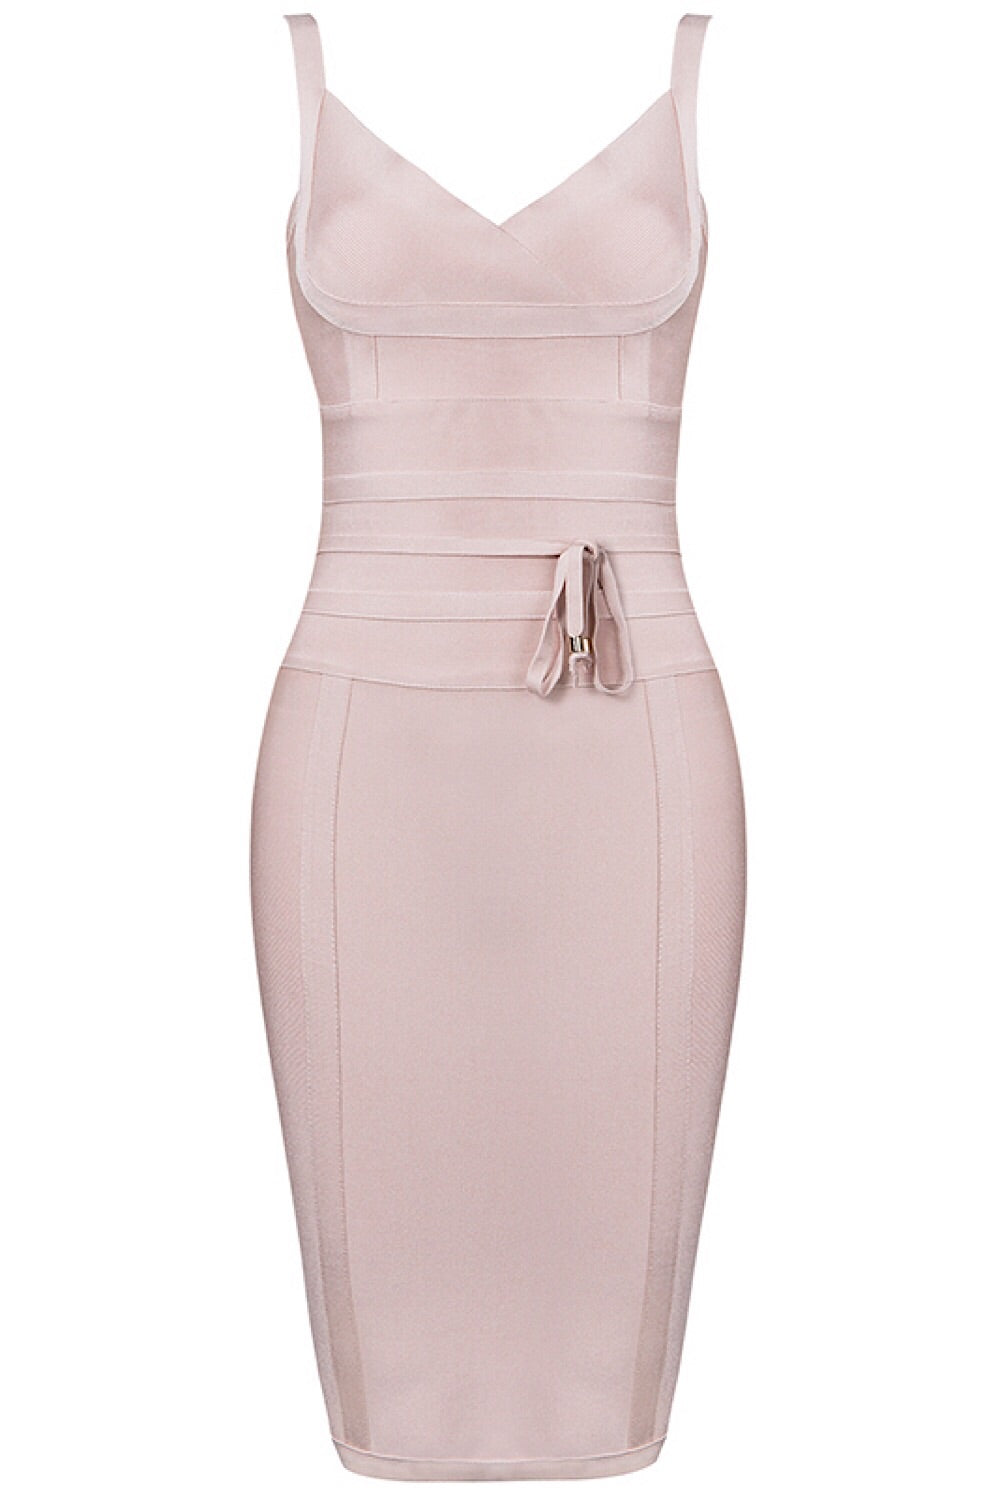 Blush Tie Waist Bandage Dress